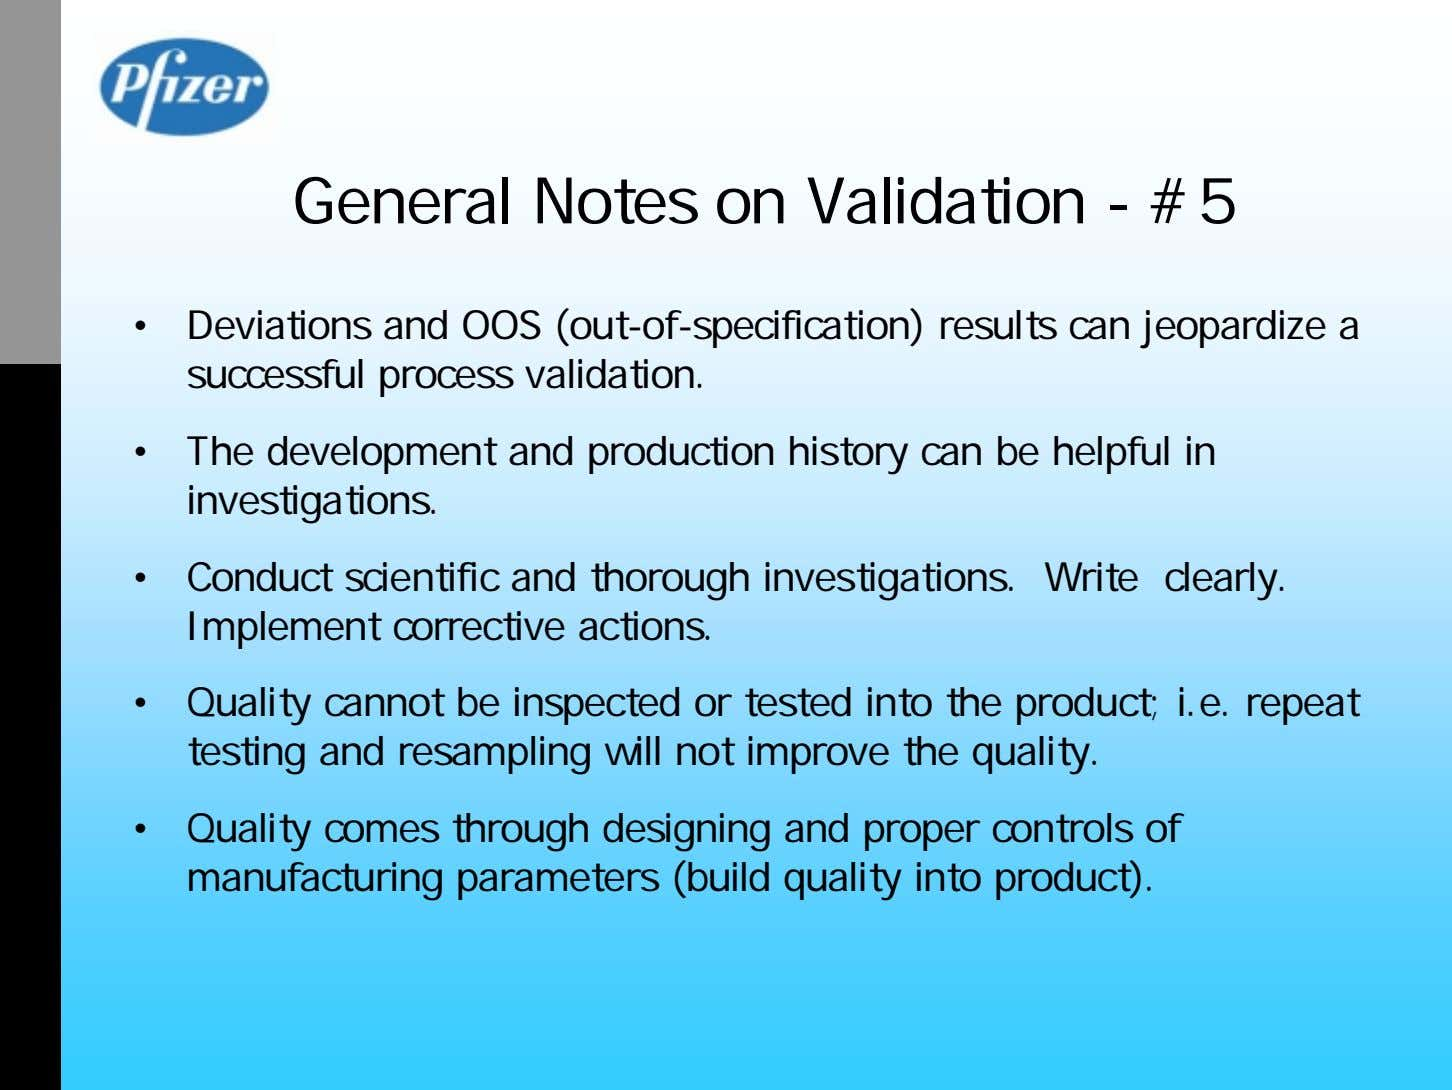 General Notes on Validation - #5 • Deviations and OOS (out-of-specification) results can jeopardize a